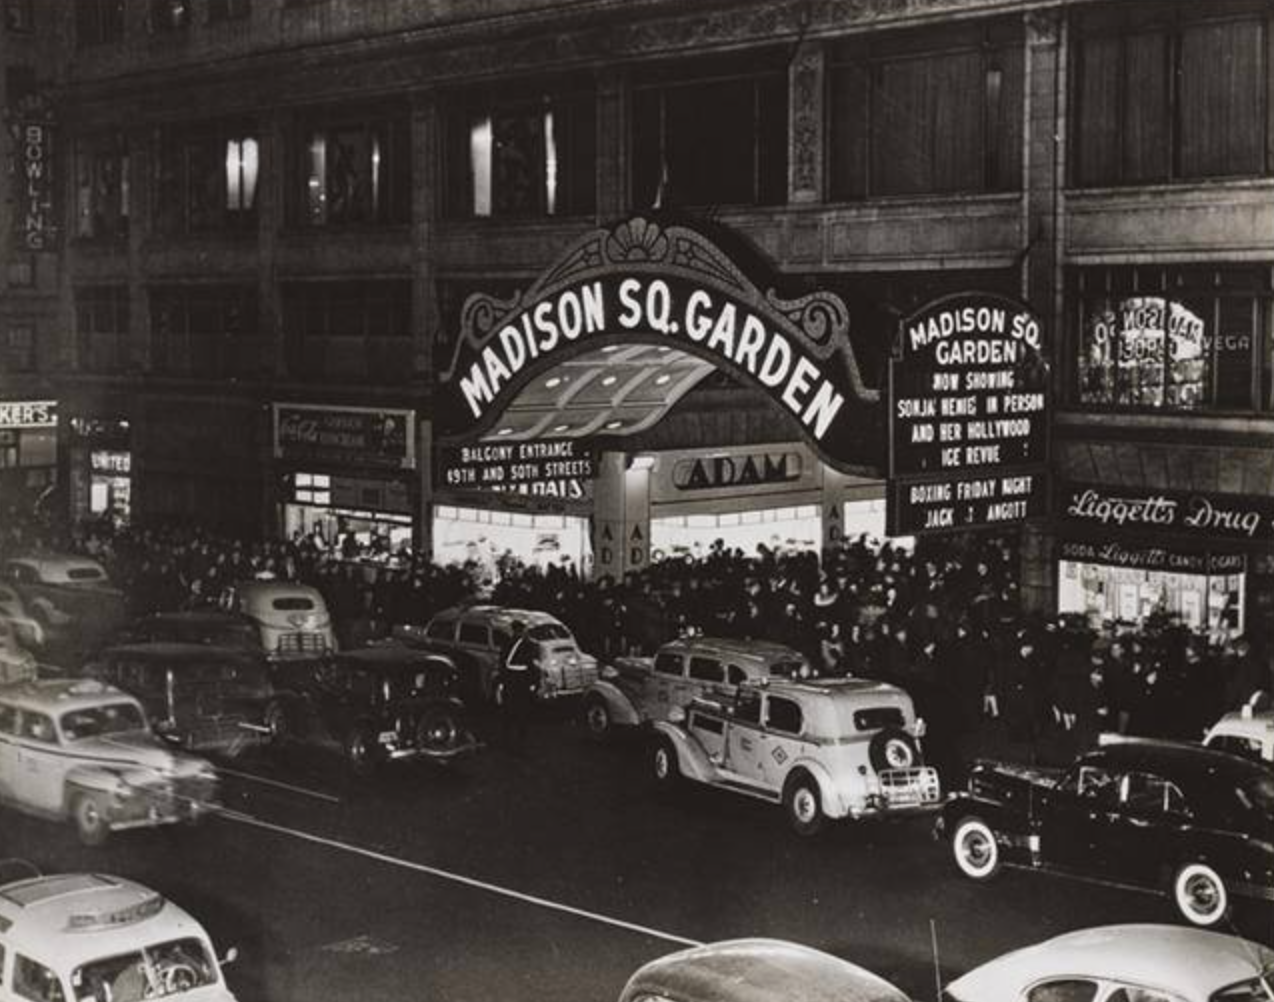 Madison Square Garden 1947 With Images Madison Square Garden